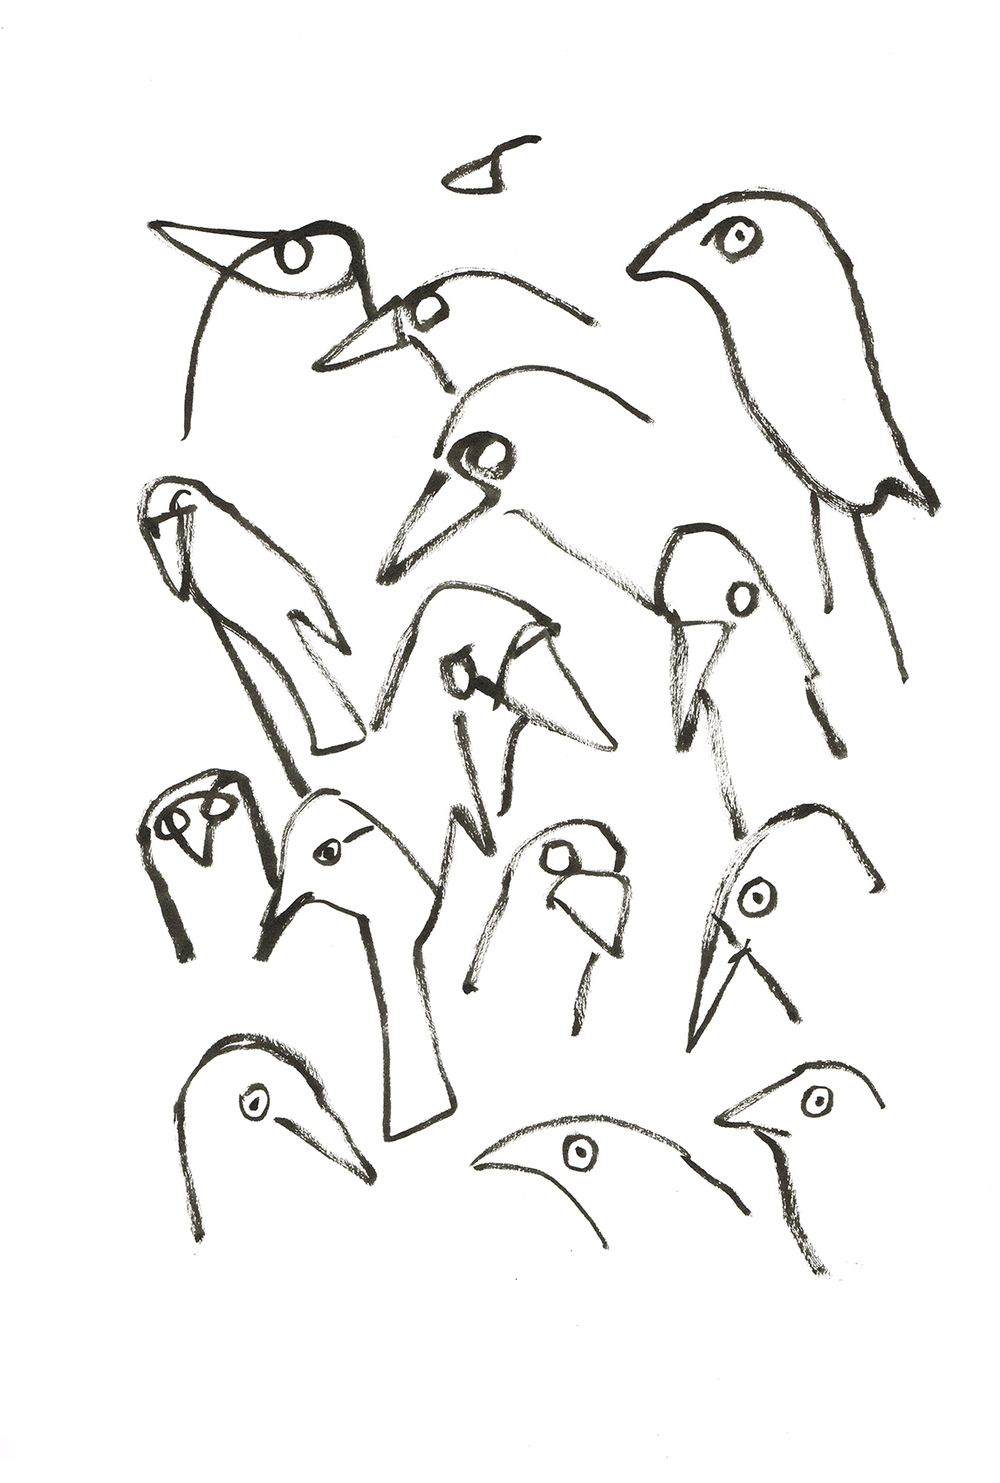 20 seconds of Jackdaws